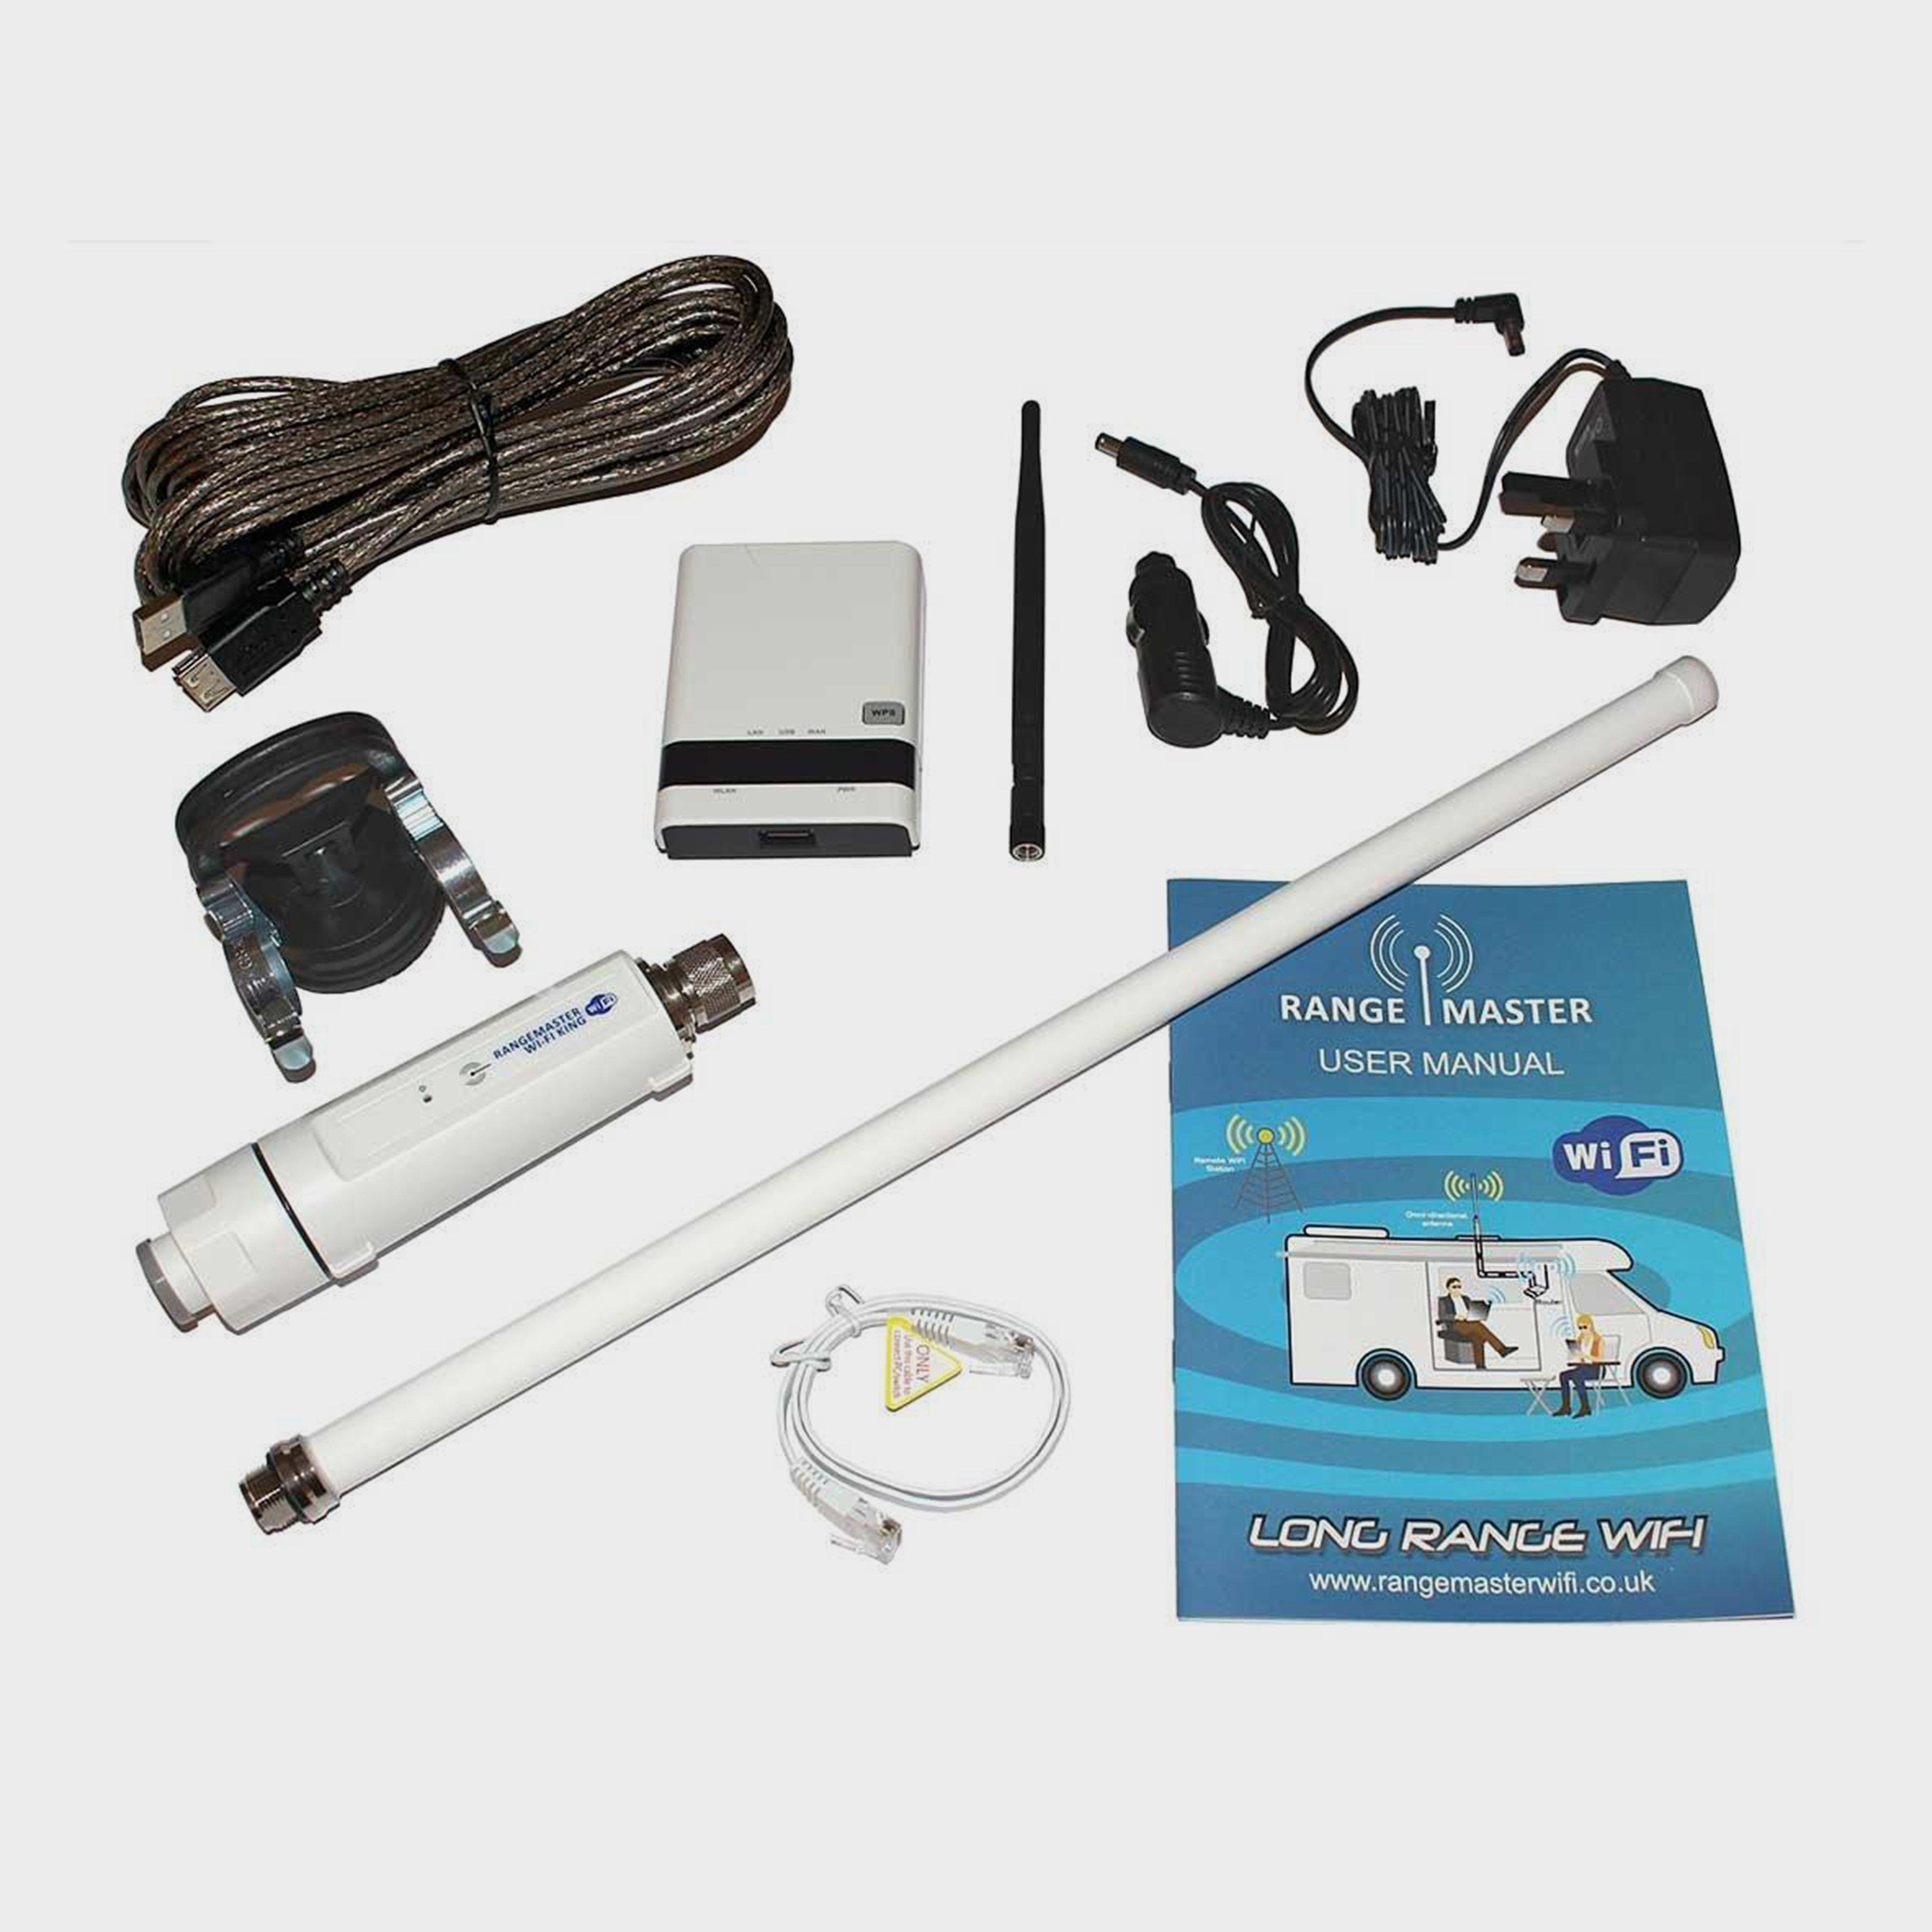 Falcon WiFi Booster Long Range WiFi Antenna and Router, NOCOLOUR/KIT